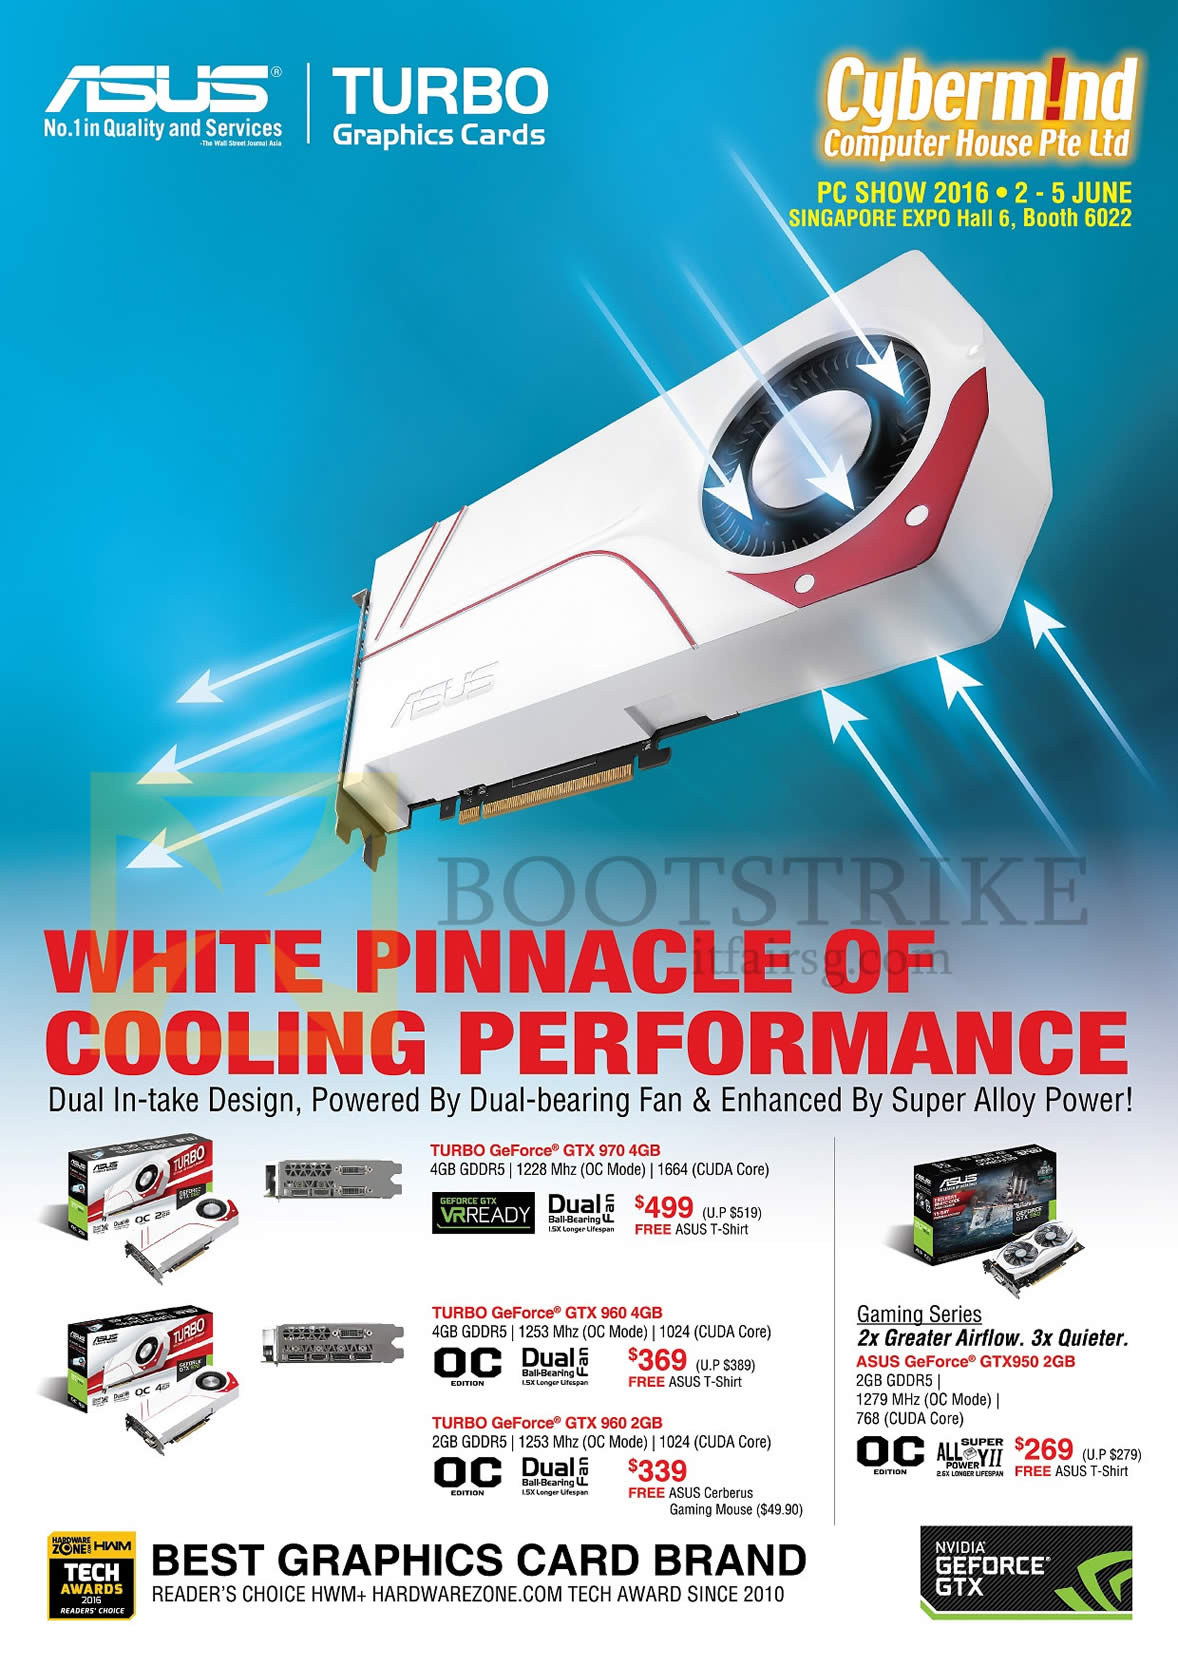 PC SHOW 2016 price list image brochure of Cybermind ASUS Graphics Video Card Turbo Geforce GTX 970, 960, 950